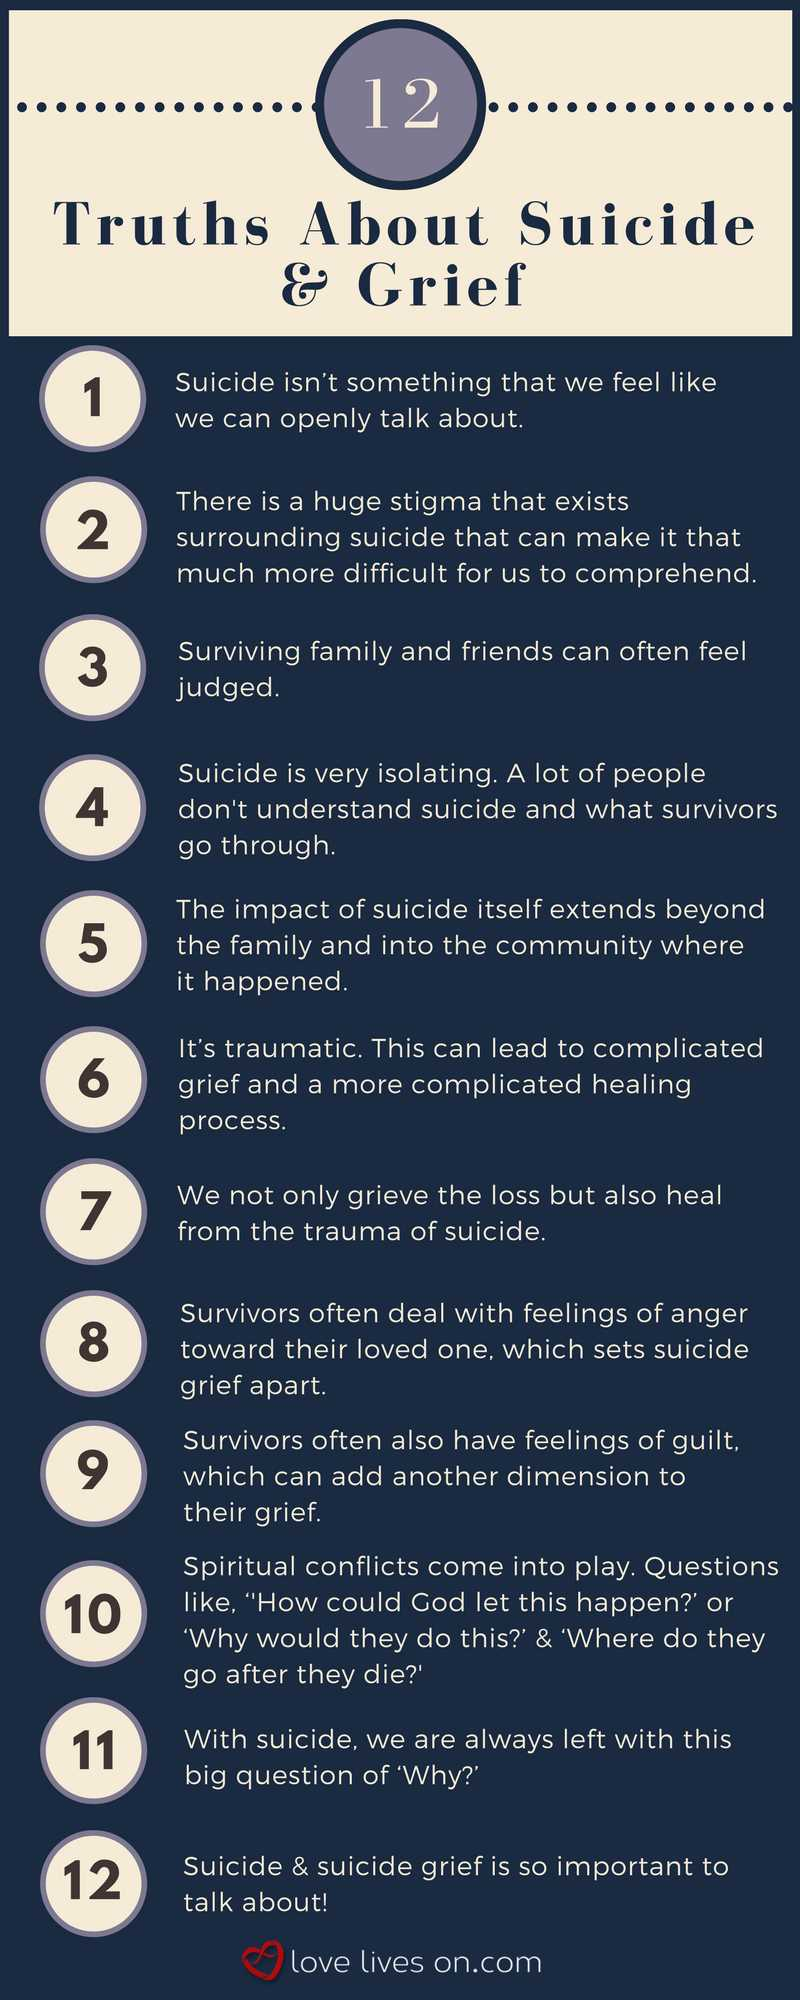 Infographic: 12 Truths About Suicide & Grief